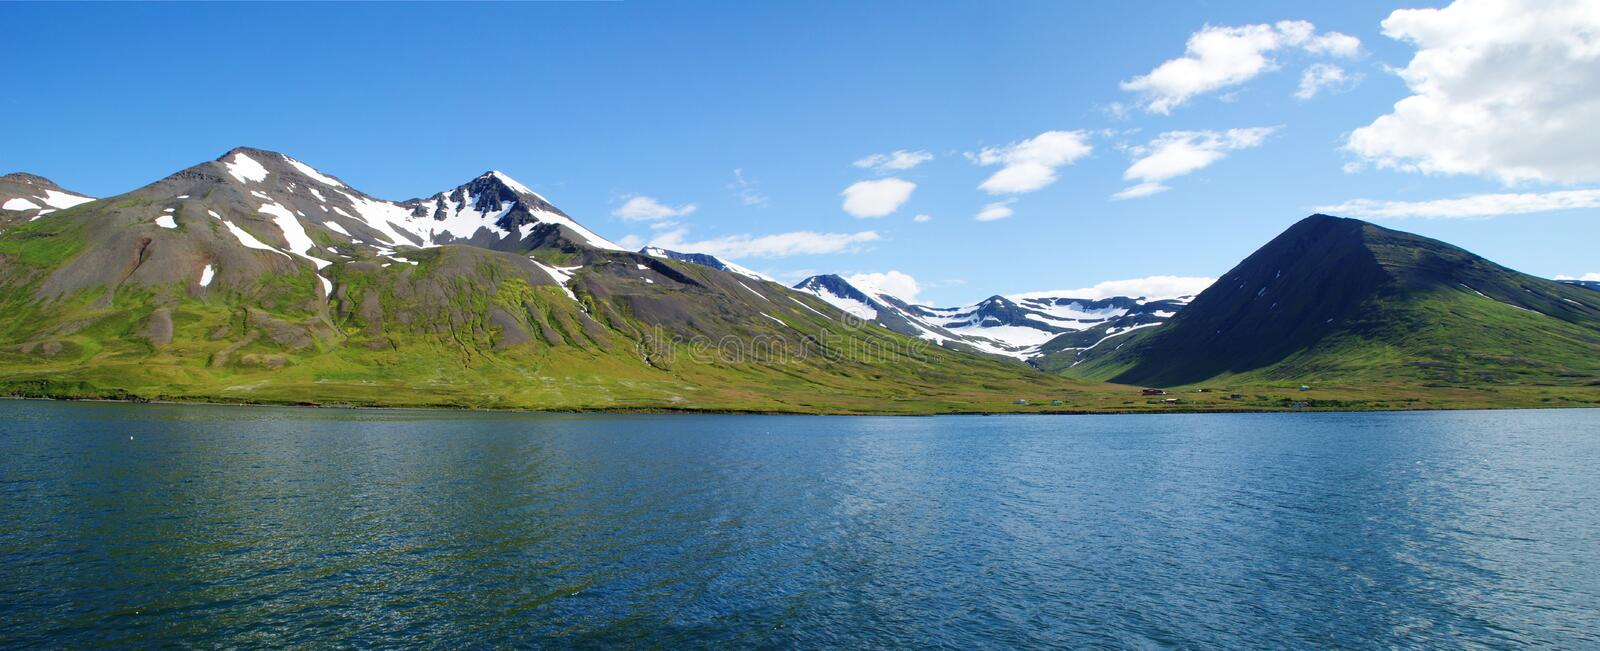 Panorama Skagafjordur eastern coastline in Northern Iceland with snowy mountains in the background stock photos